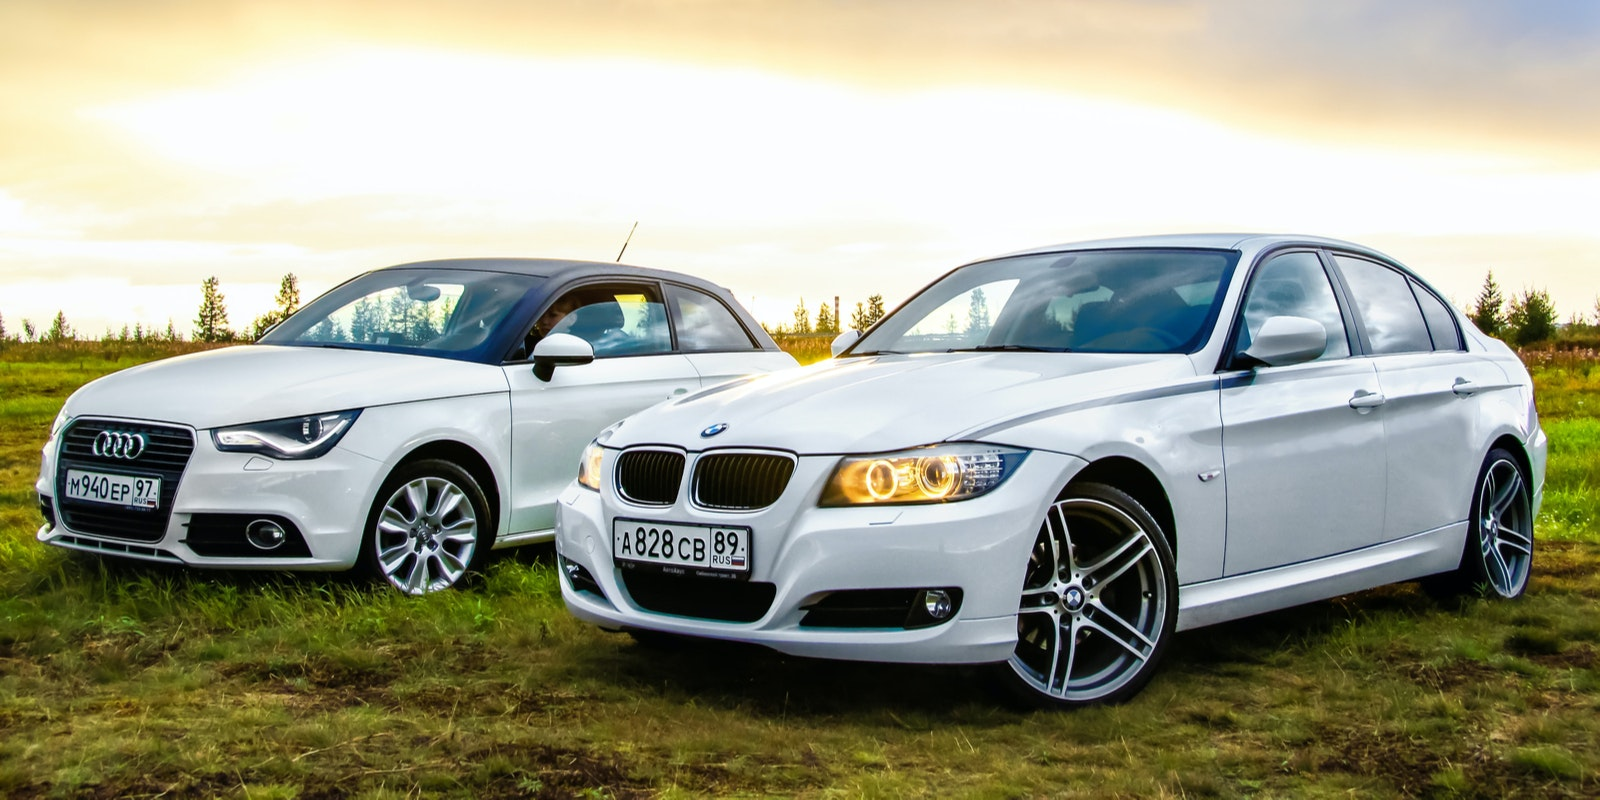 Audi Vs Bmw Which Brand Is Better Leasefetcher